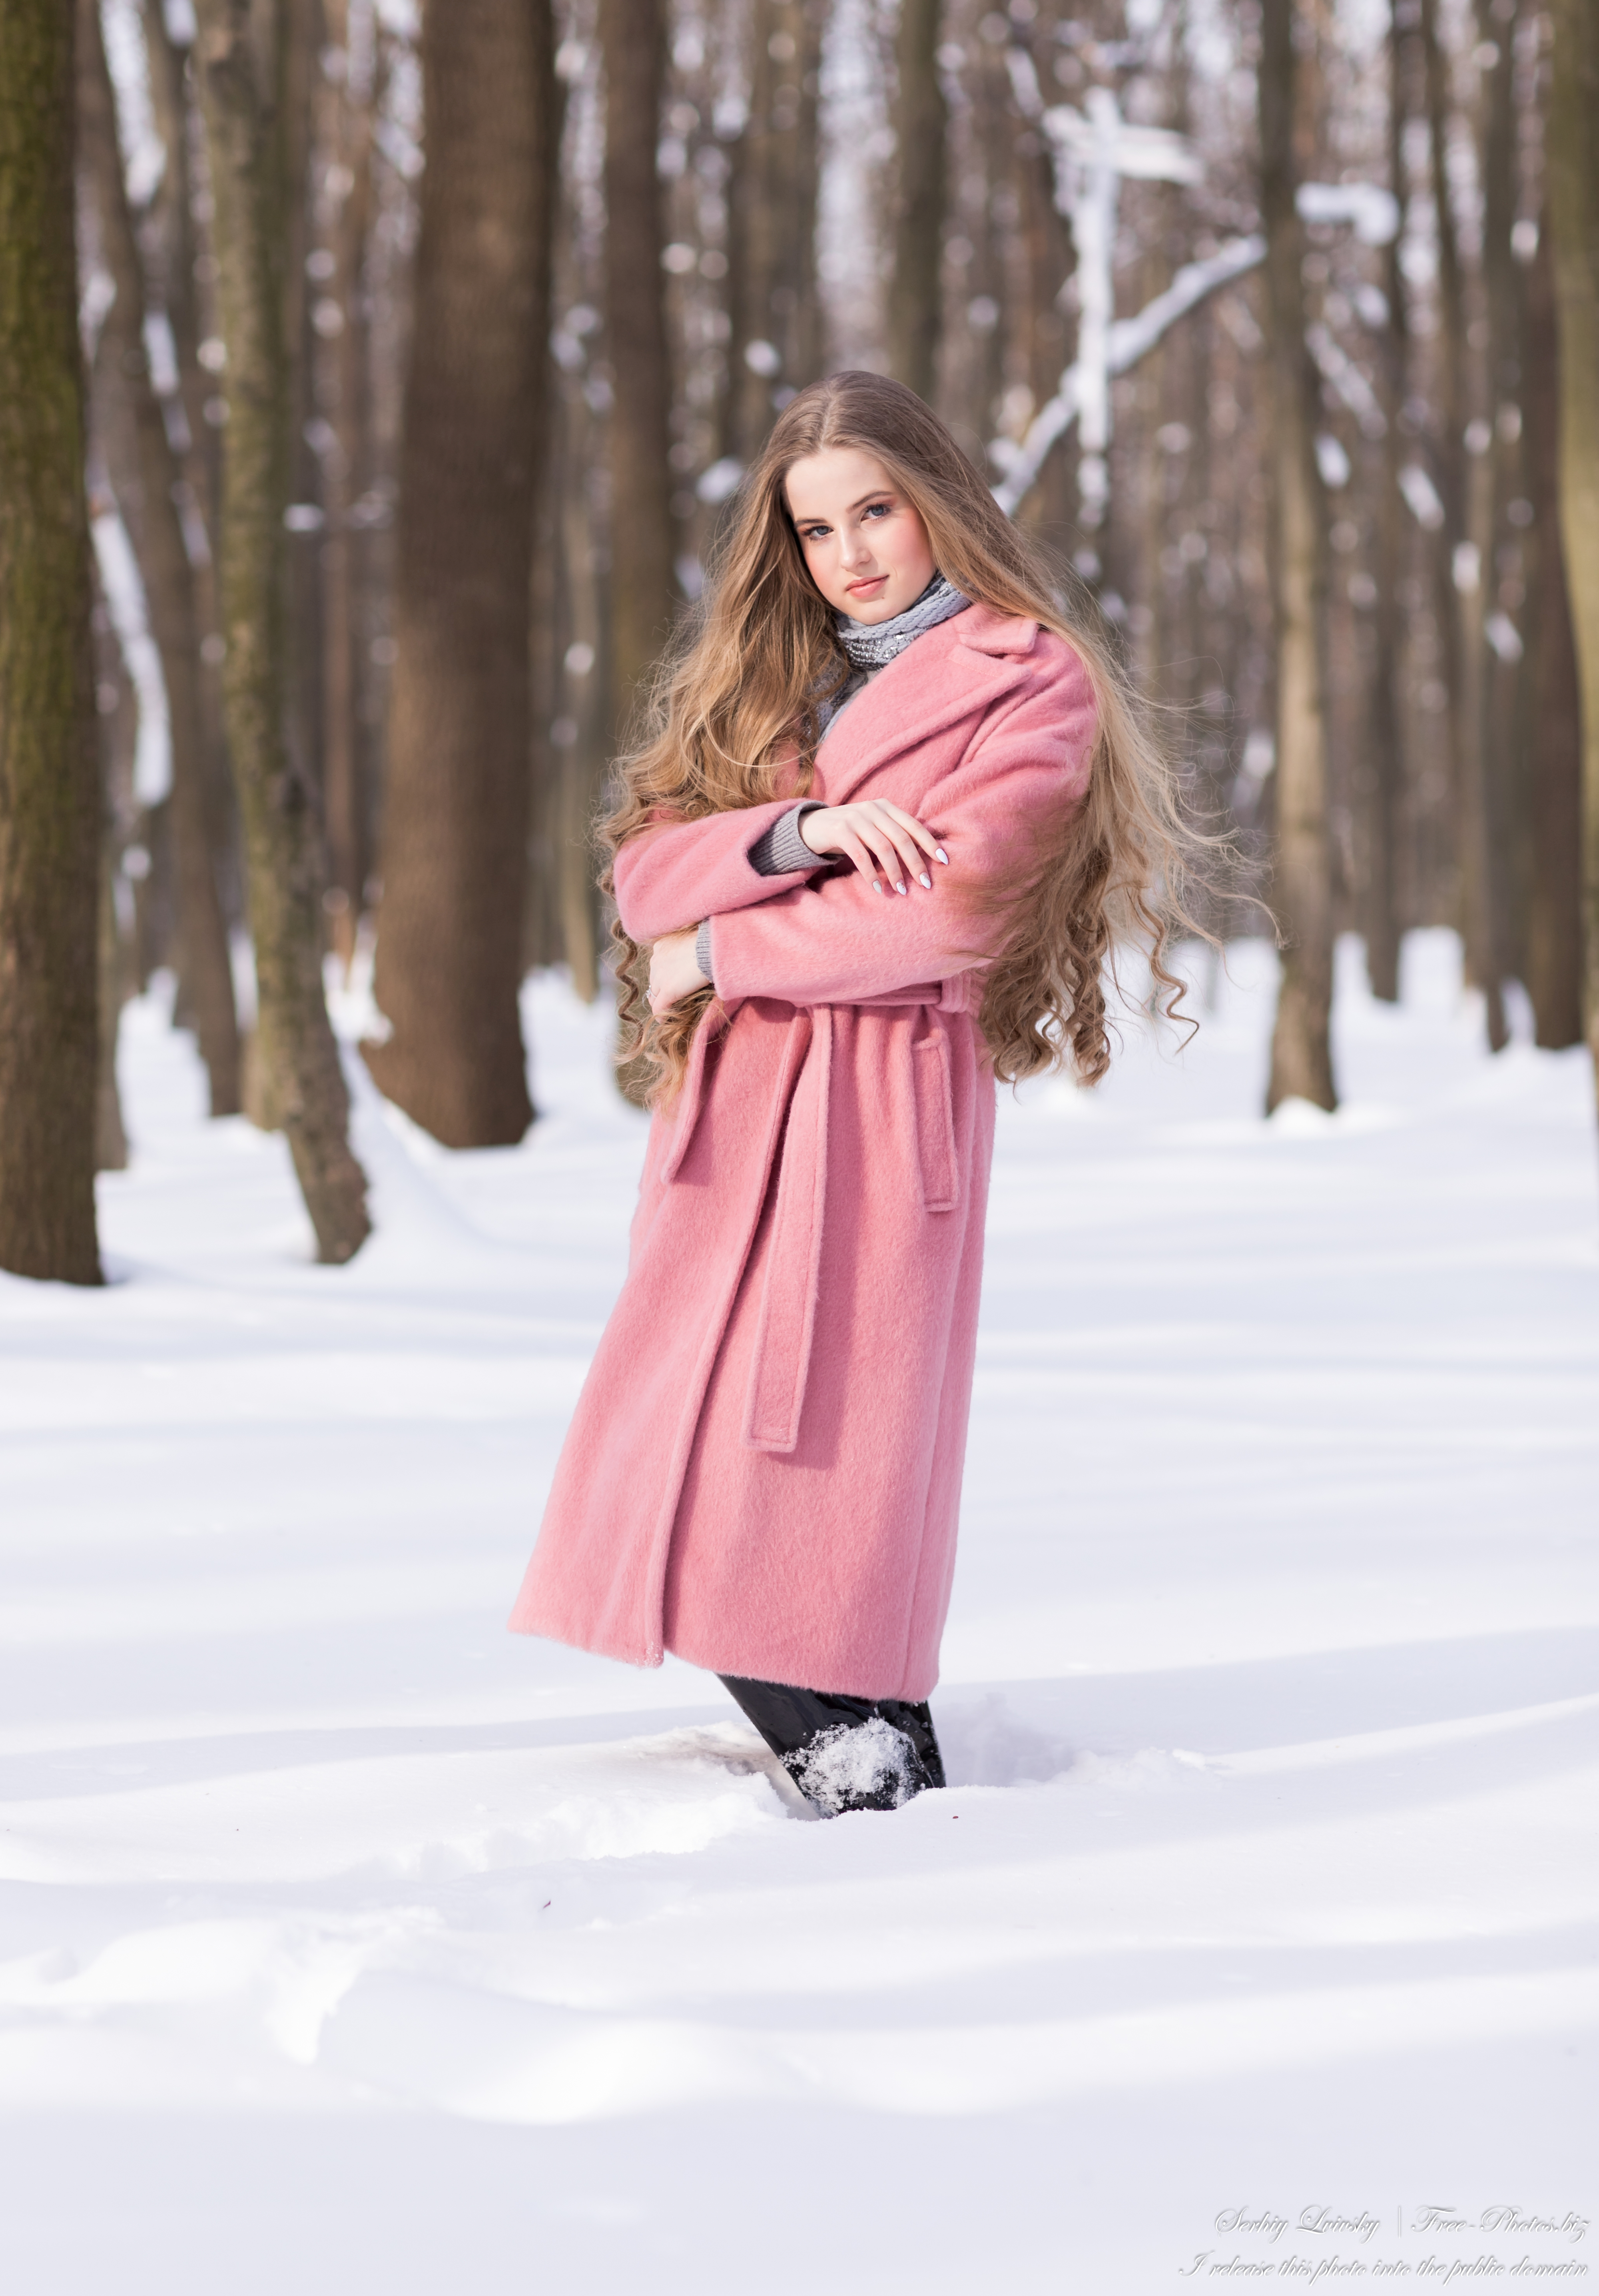 diana_an_18-year-old_natural_blonde_girl_photographed_by_serhiy_lvivsky_in_feb_2021_11